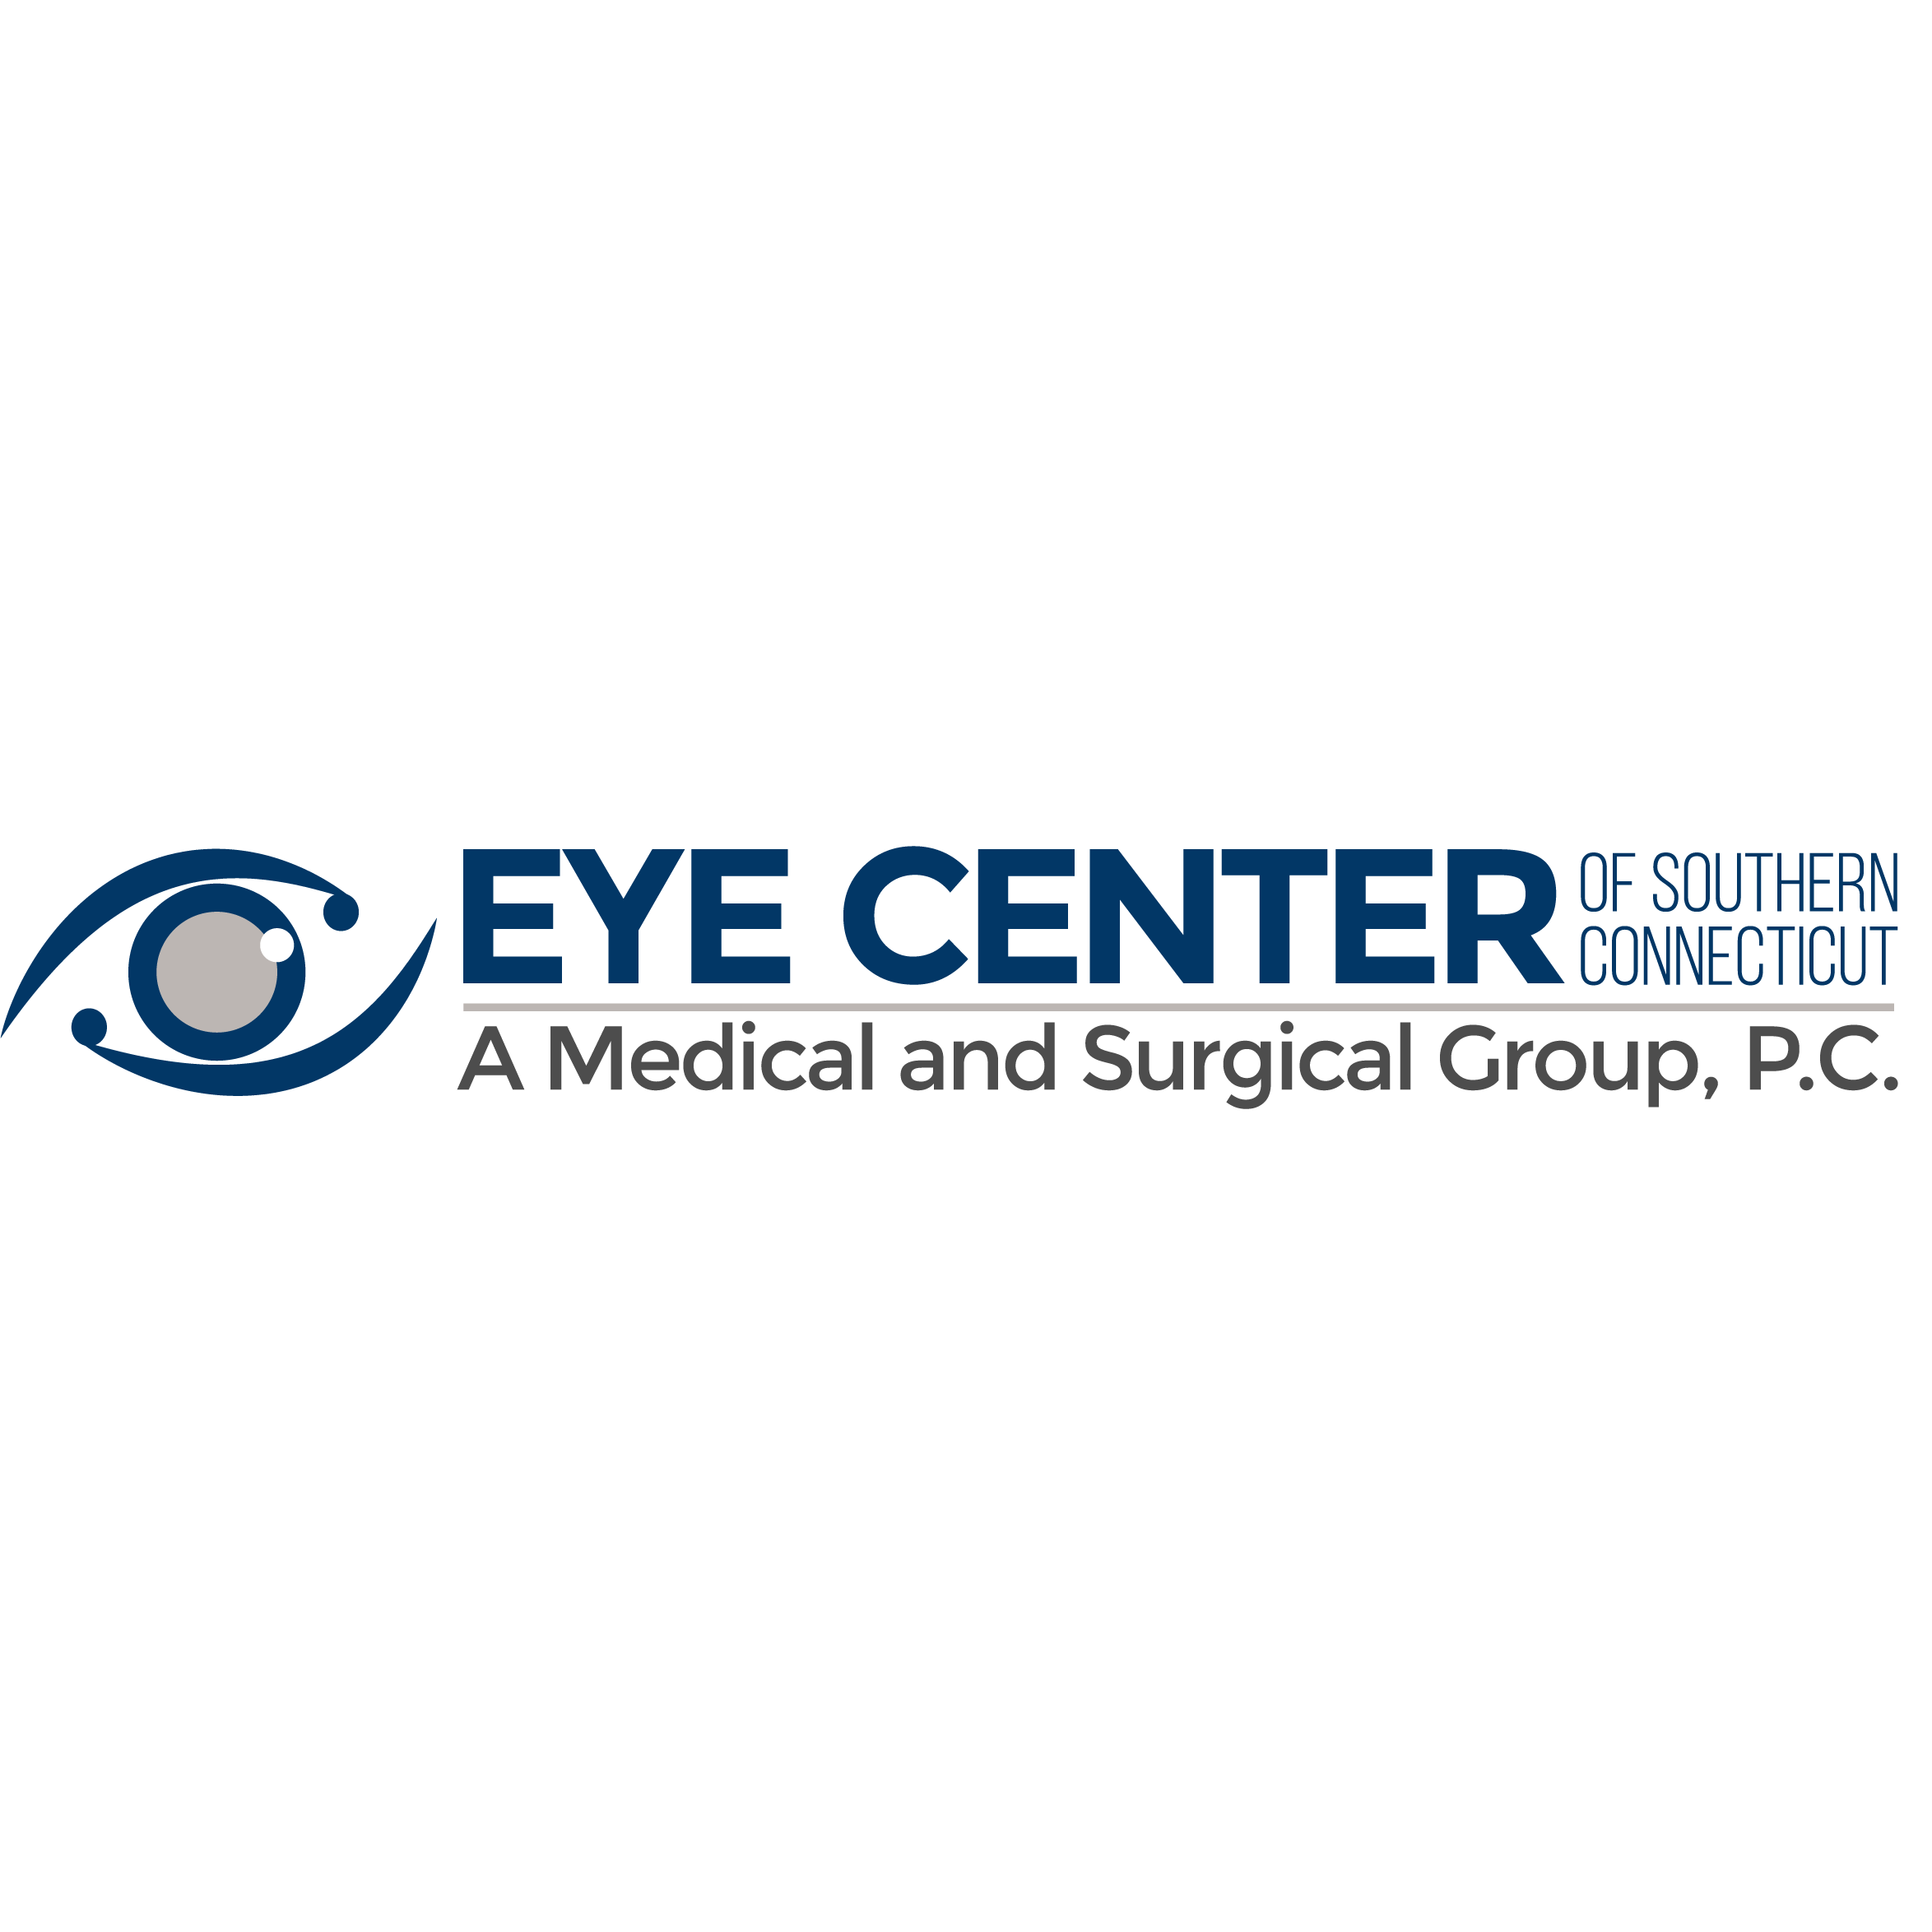 Eye Center of Southern Connecticut